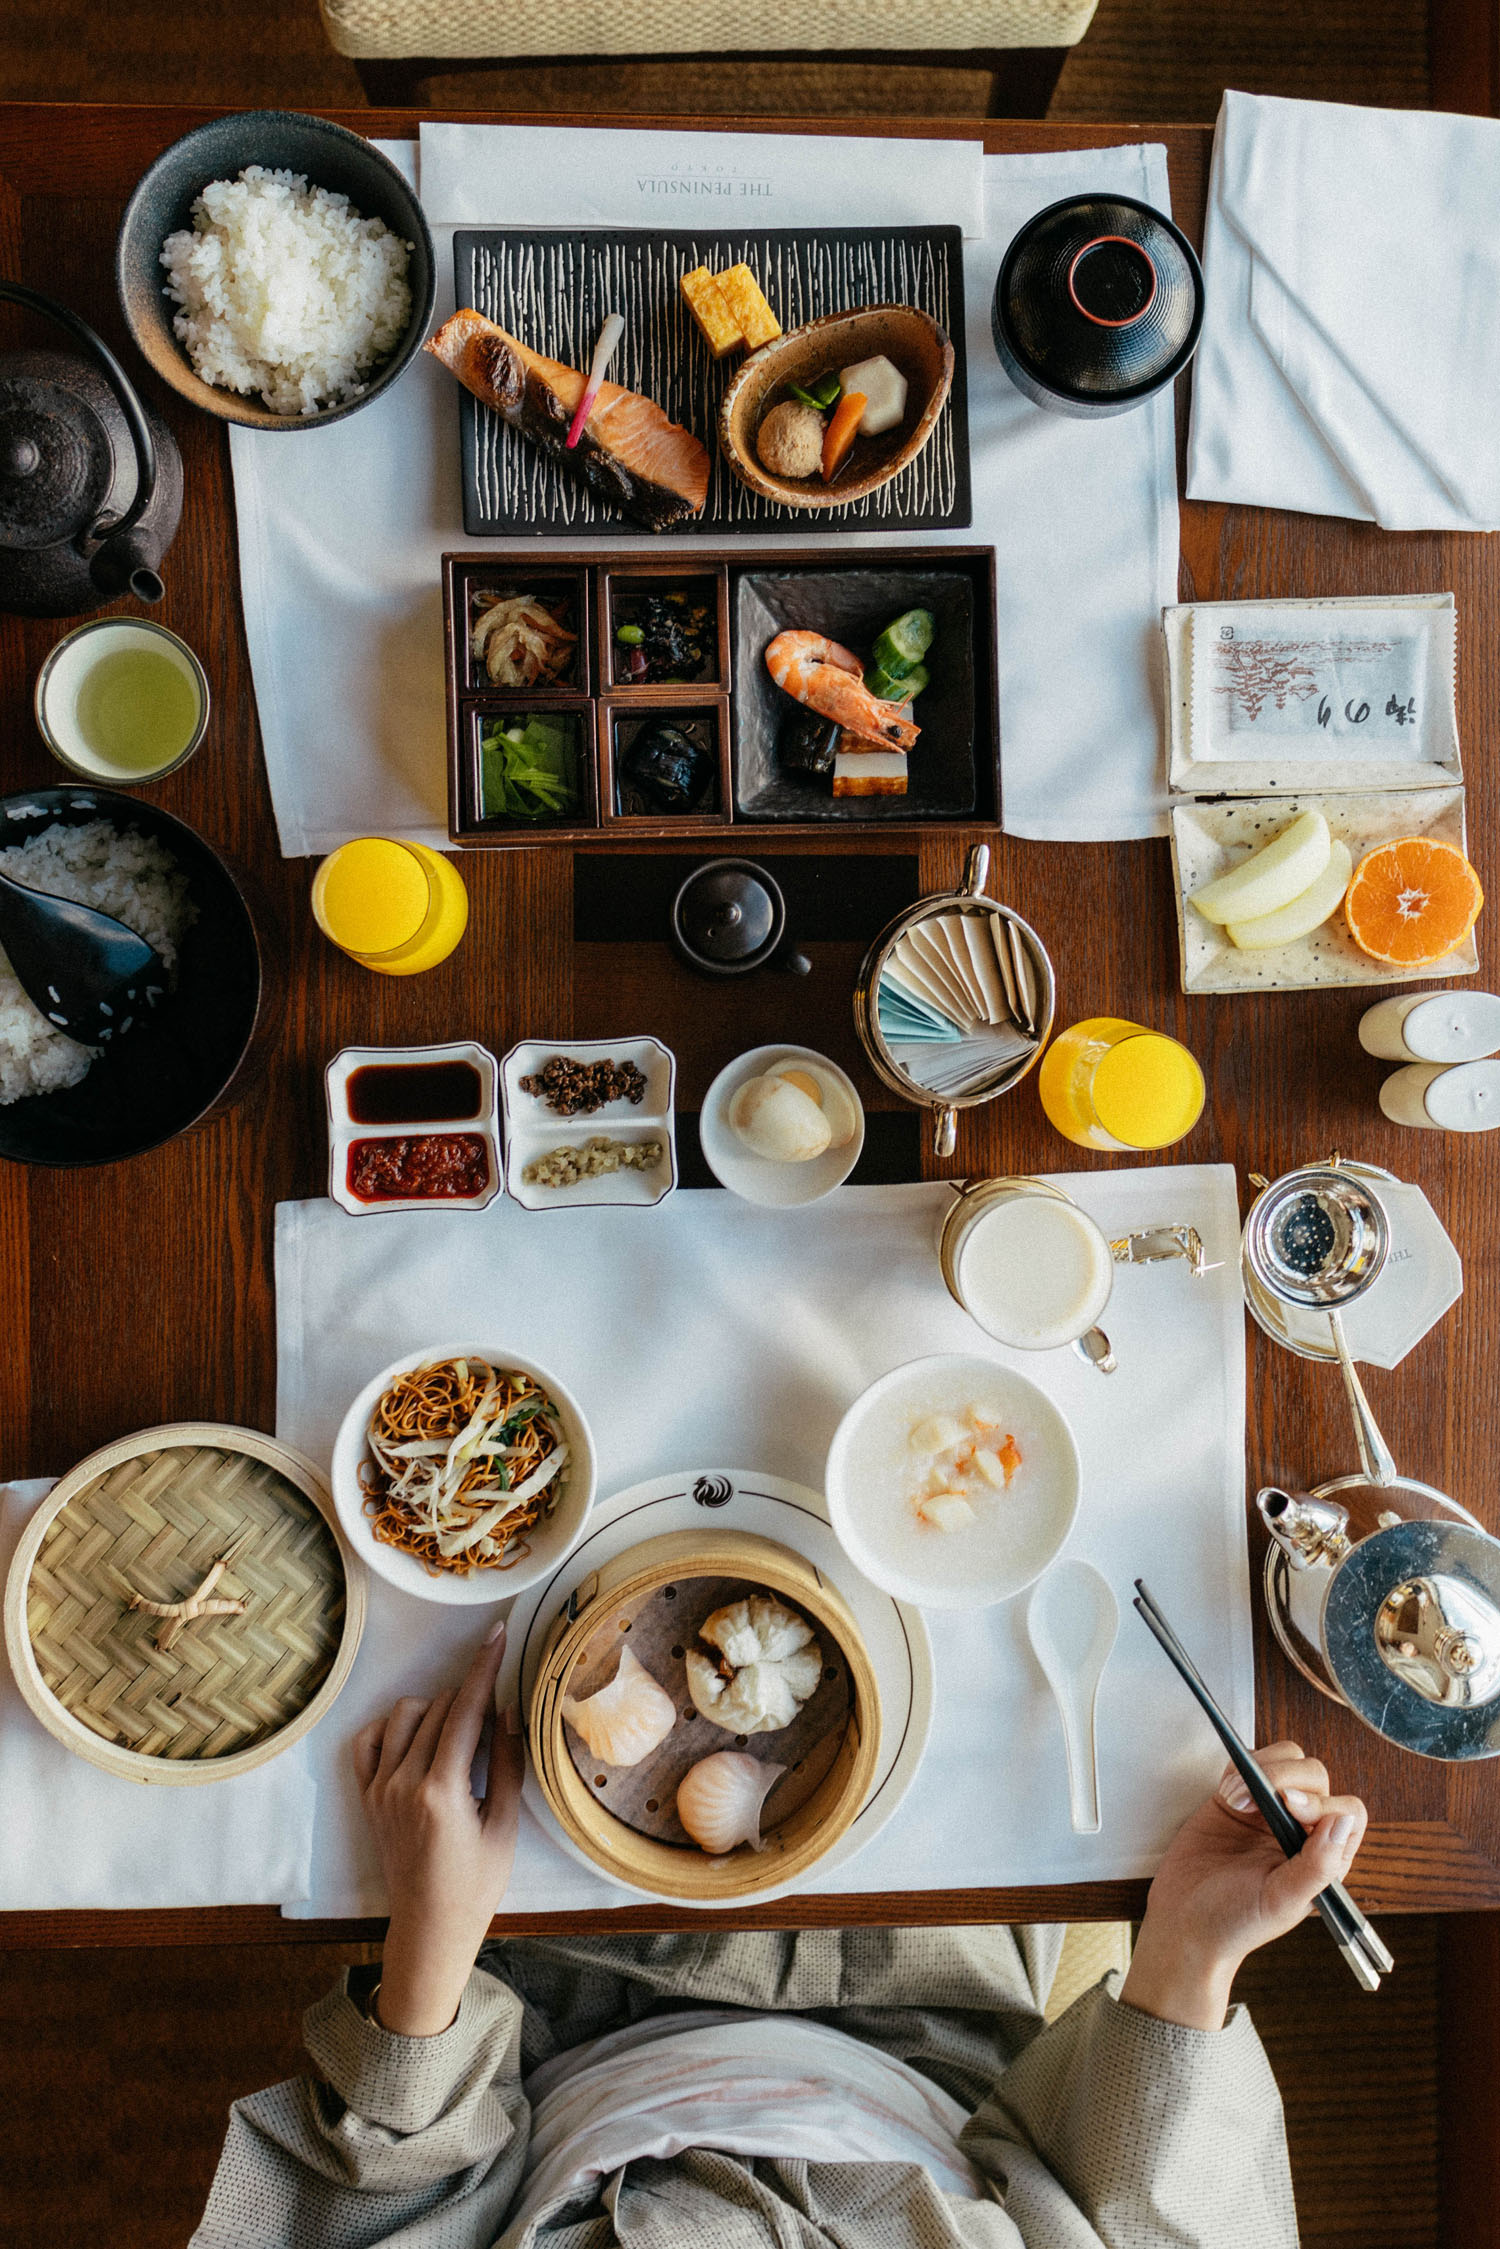 In-room dining at the  Peninsula Tokyo  – Japanese breakfast for the hubby and Chinese breakfast for me.